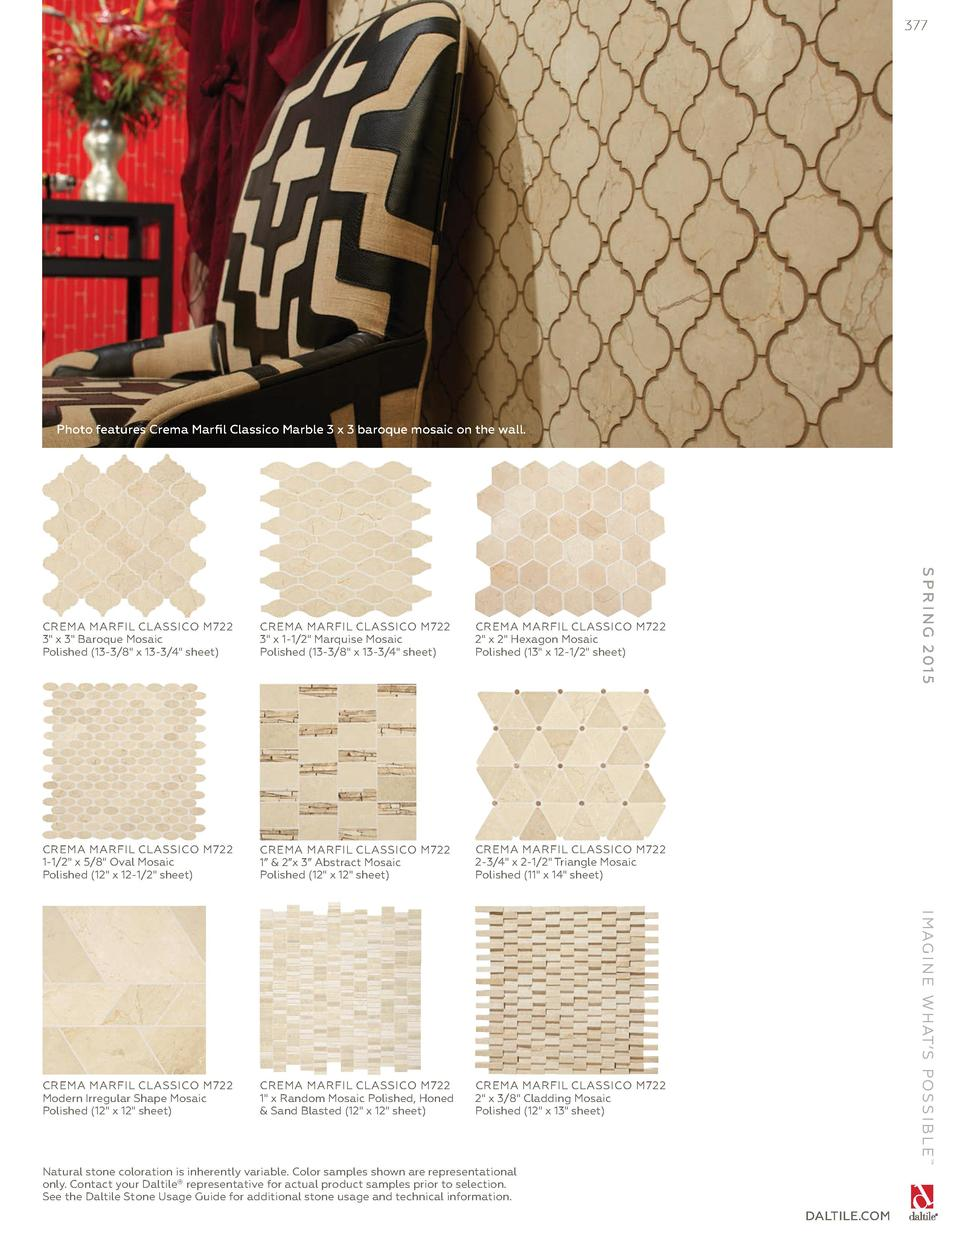 377  Photo features Crema Marfil Classico Marble 3 x 3 baroque mosaic on the wall.  CREMA MARFIL CLASSICO M722 2  x 2  Hex...